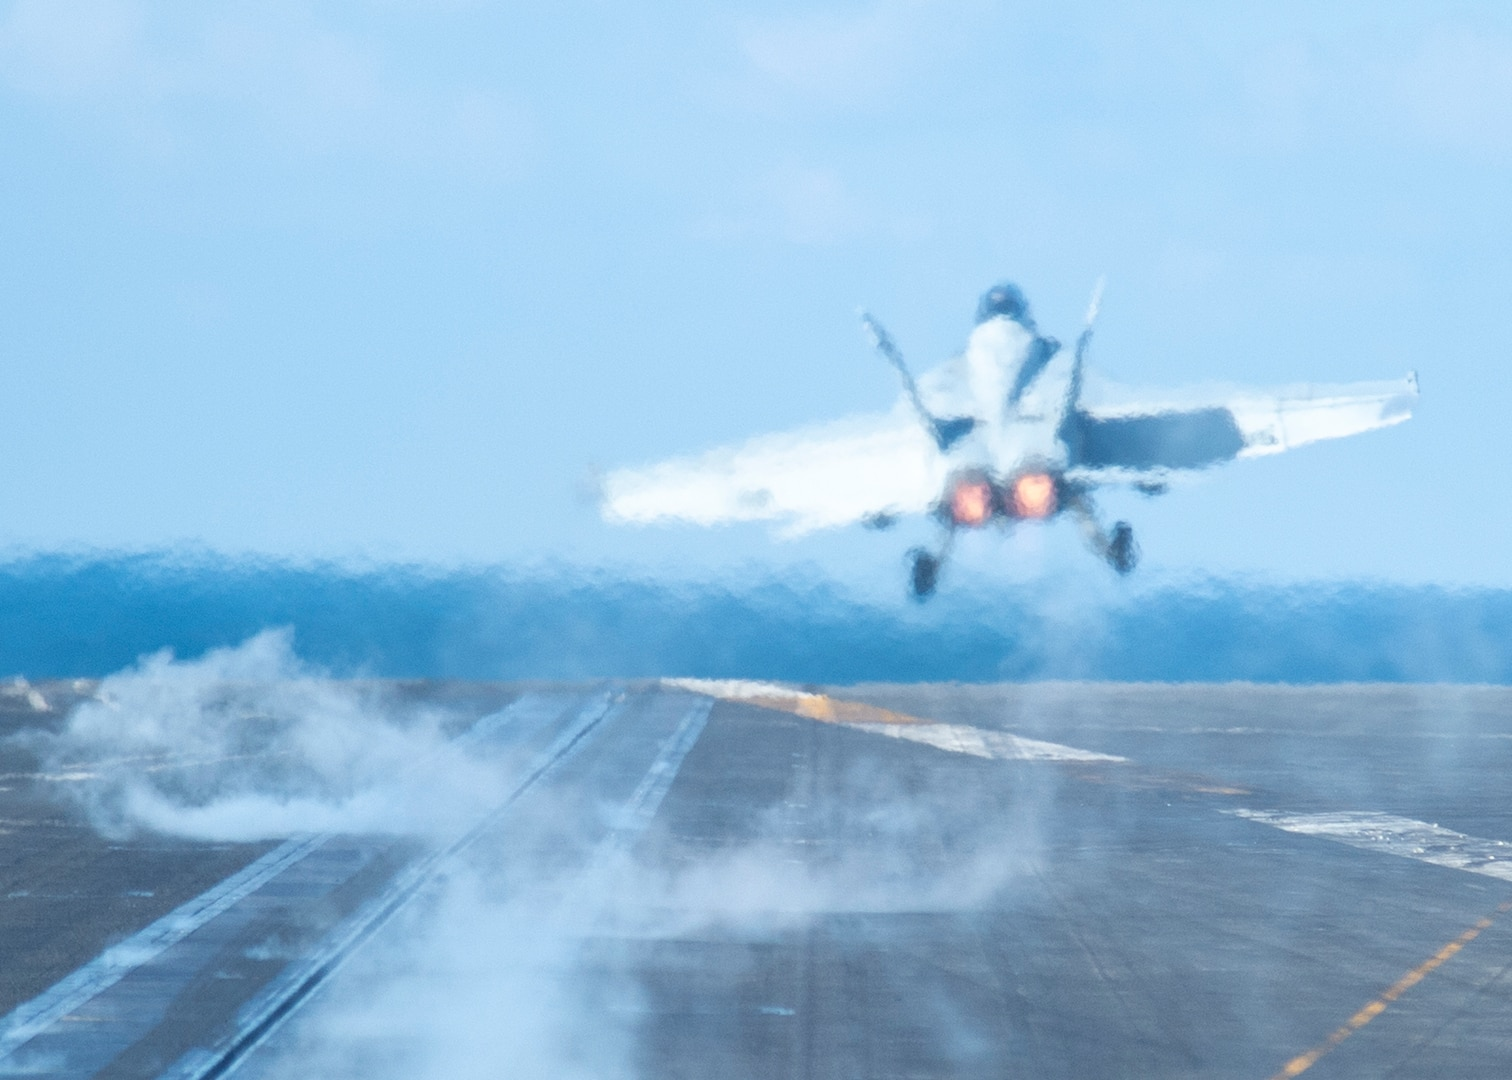 """PACIFIC OCEAN (Jan. 23, 2021) – An F/A-18F Super Hornet, assigned to the """"Black Knights"""" of Strike Fighter Squadron (VFA) 154, takes off from the flight deck of the aircraft carrier USS Theodore Roosevelt (CVN 71) Jan. 23, 2021. The Theodore Roosevelt Carrier Strike Group is on a scheduled deployment to the U.S. 7th Fleet area of operations. As the U.S. Navy's largest forward deployed fleet, with its approximate 50-70 ships and submarines, 140 aircraft, and 20,000 Sailors in the area of operations at any given time, 7th Fleet conducts forward-deployed naval operations in support of U.S. national interests throughout a free and open Indo-Pacific area of operations to foster maritime security, promote stability, and prevent conflict alongside 35 other maritime nations and partners."""